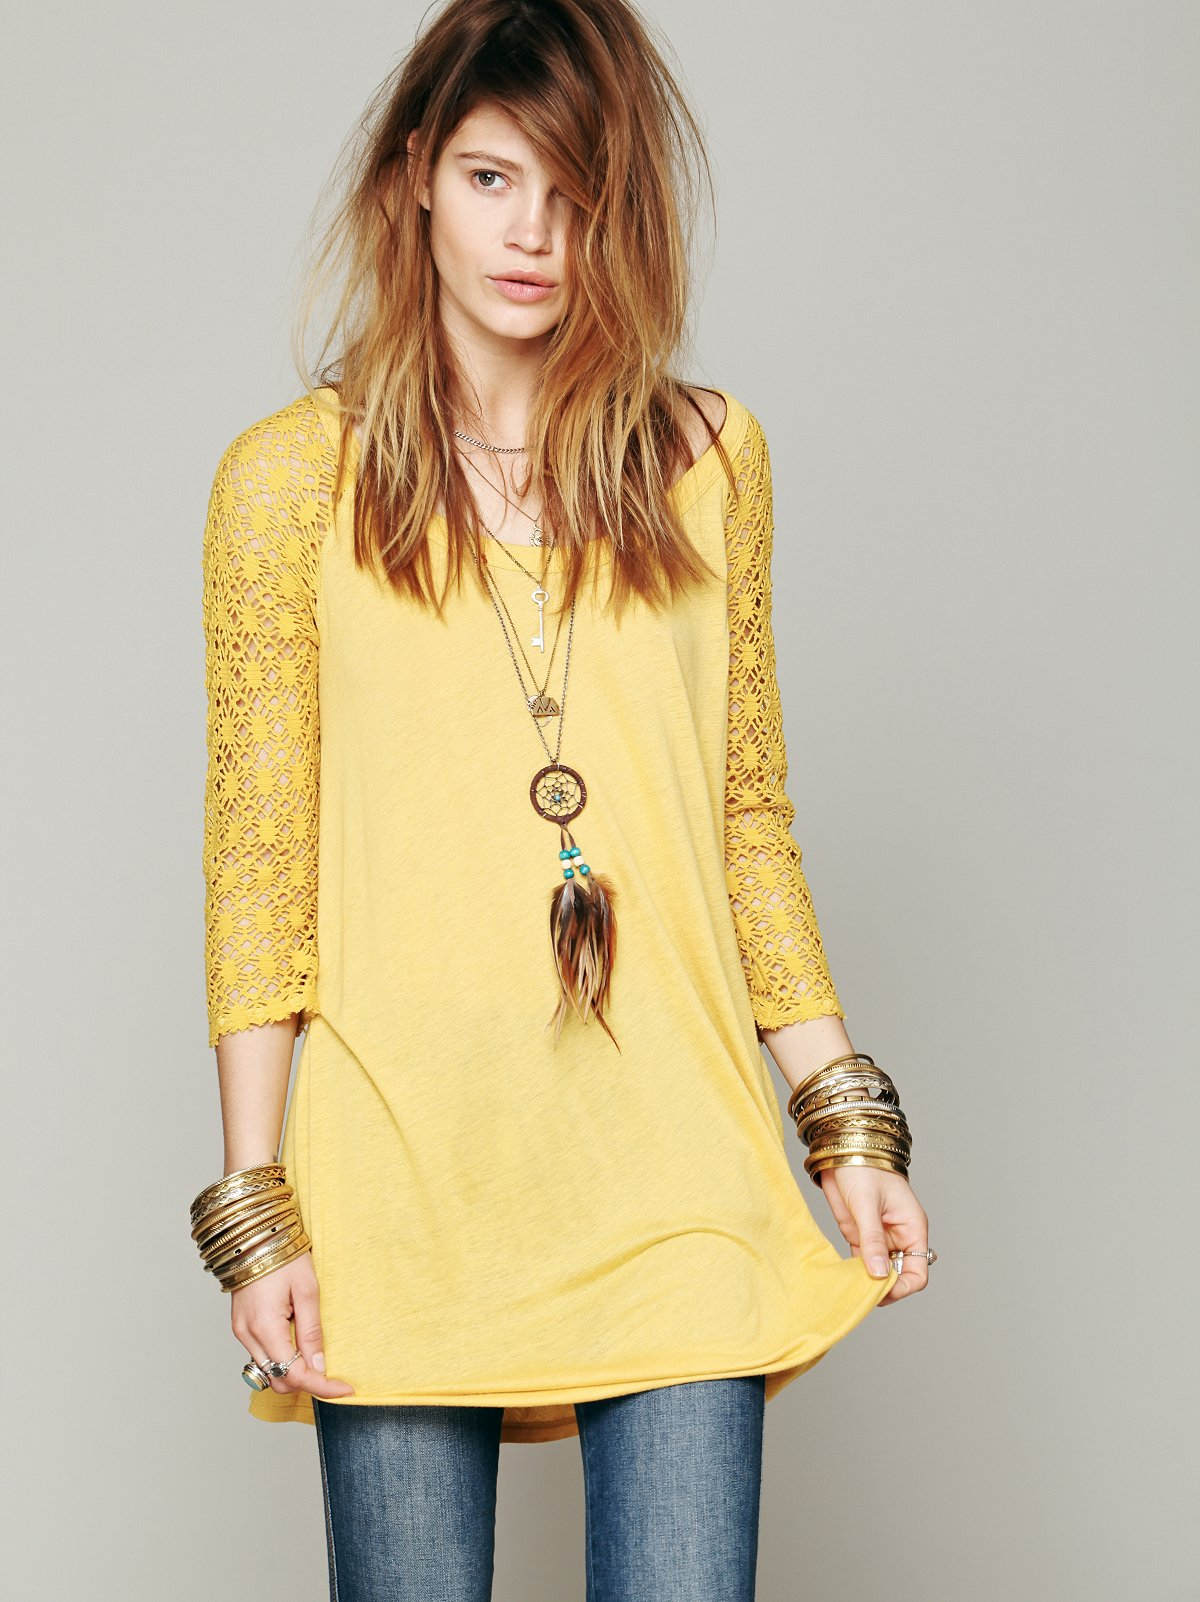 Pitch Hitter Tunic